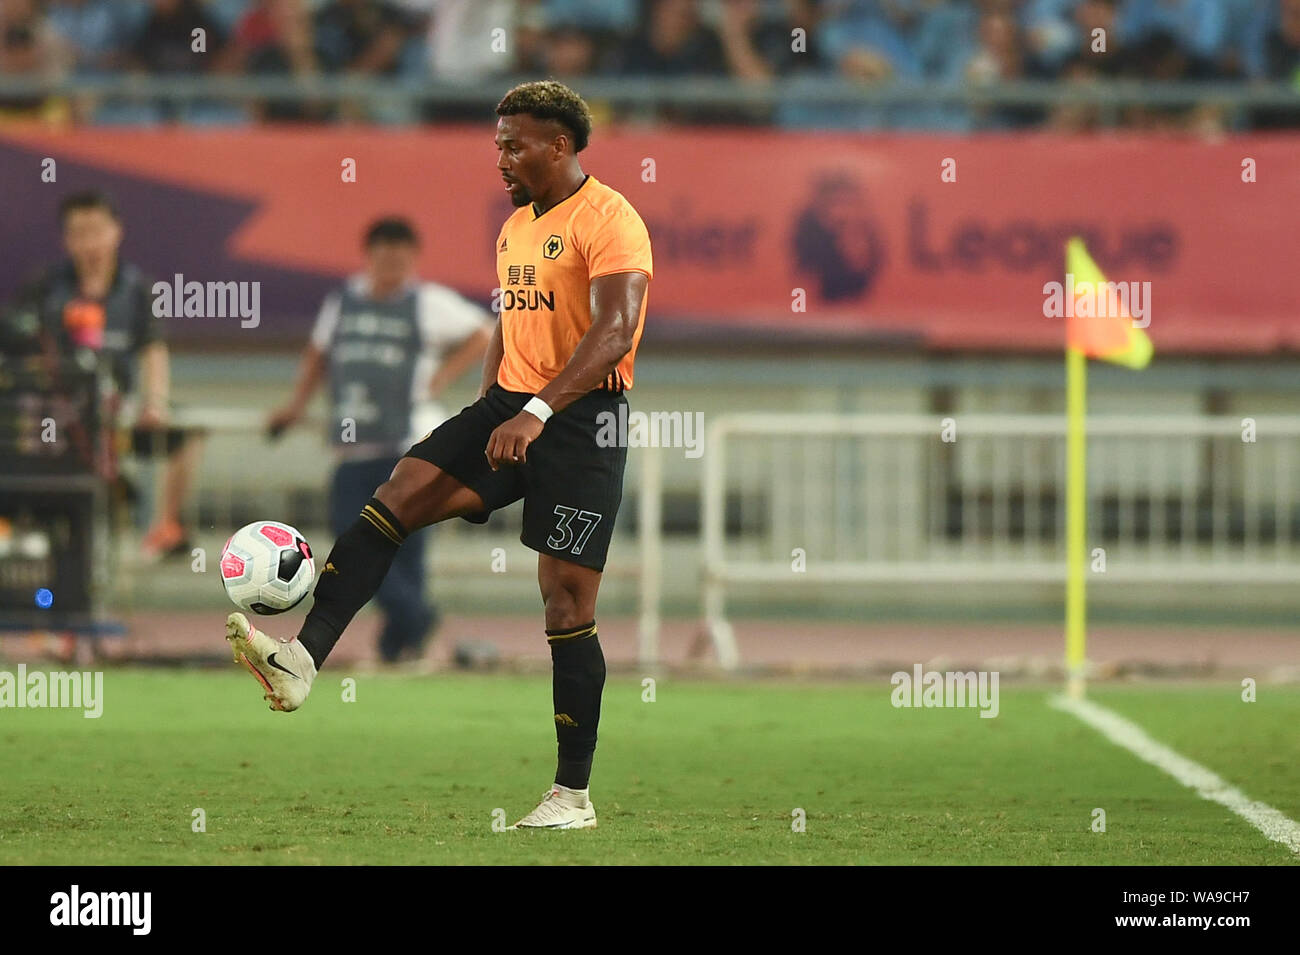 Spanish Football Player Adama Traore Of Wolverhampton Wanderers F C Of English League Champions Dribbles Against Newcastle United F C In The Semifin Stock Photo Alamy